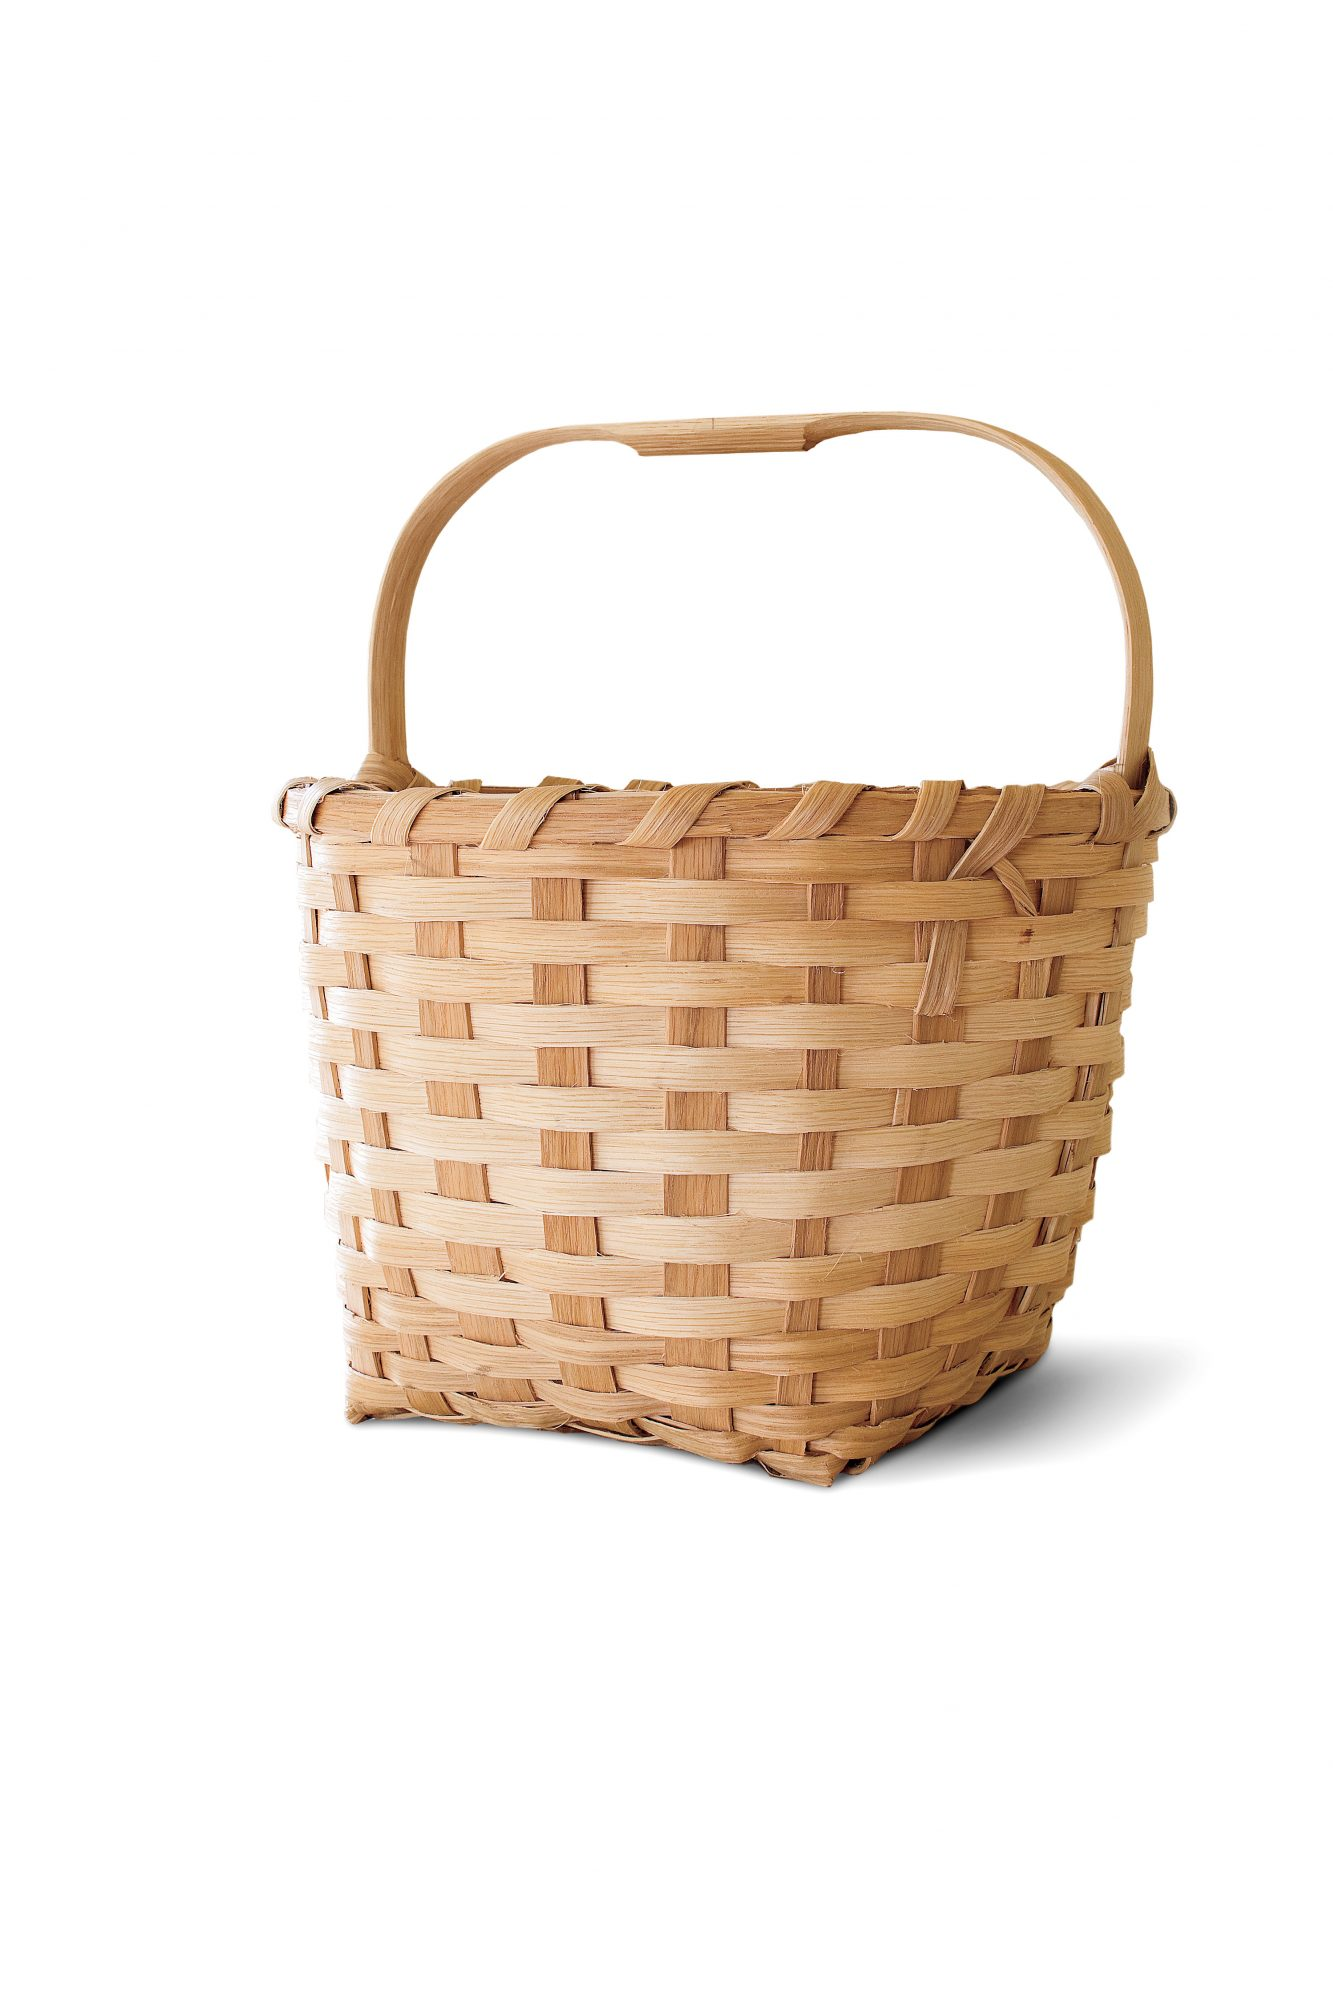 Split White Oak Basket